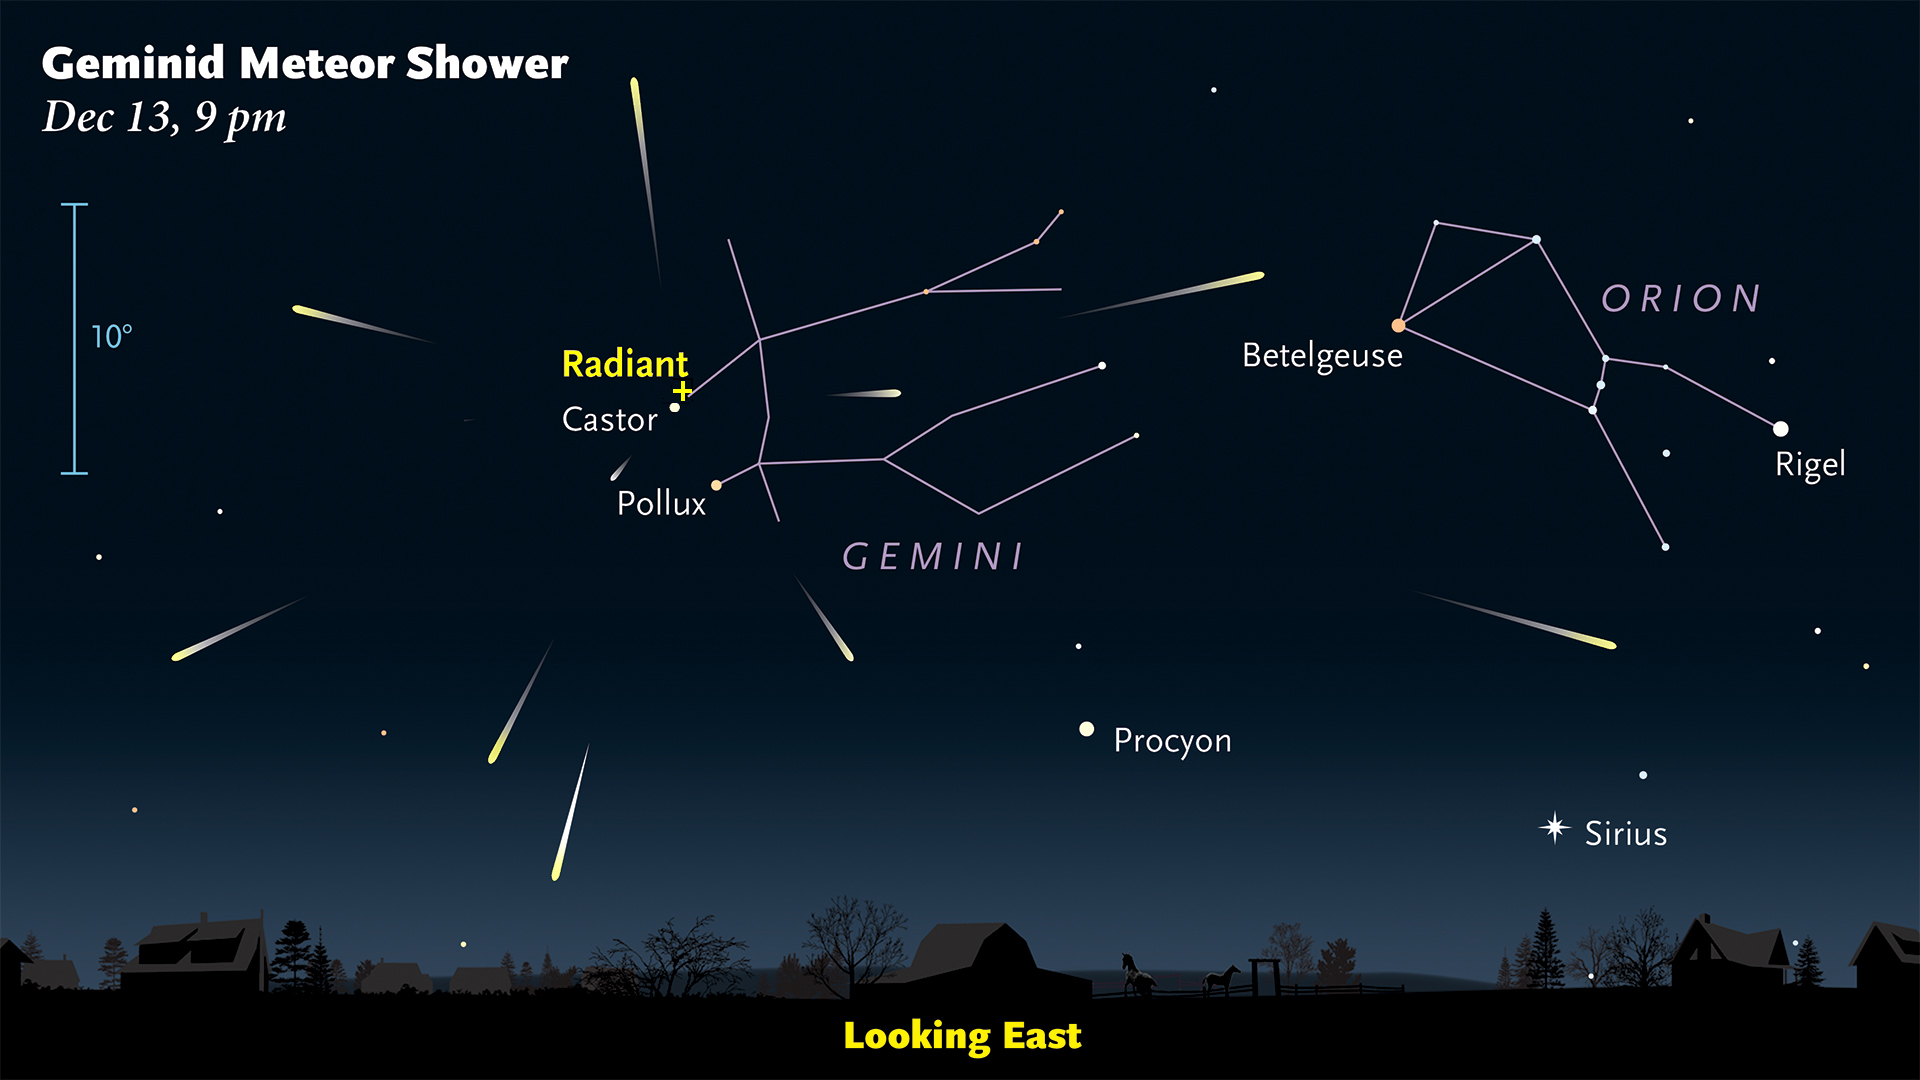 Geminids in 2017 at 9 pm